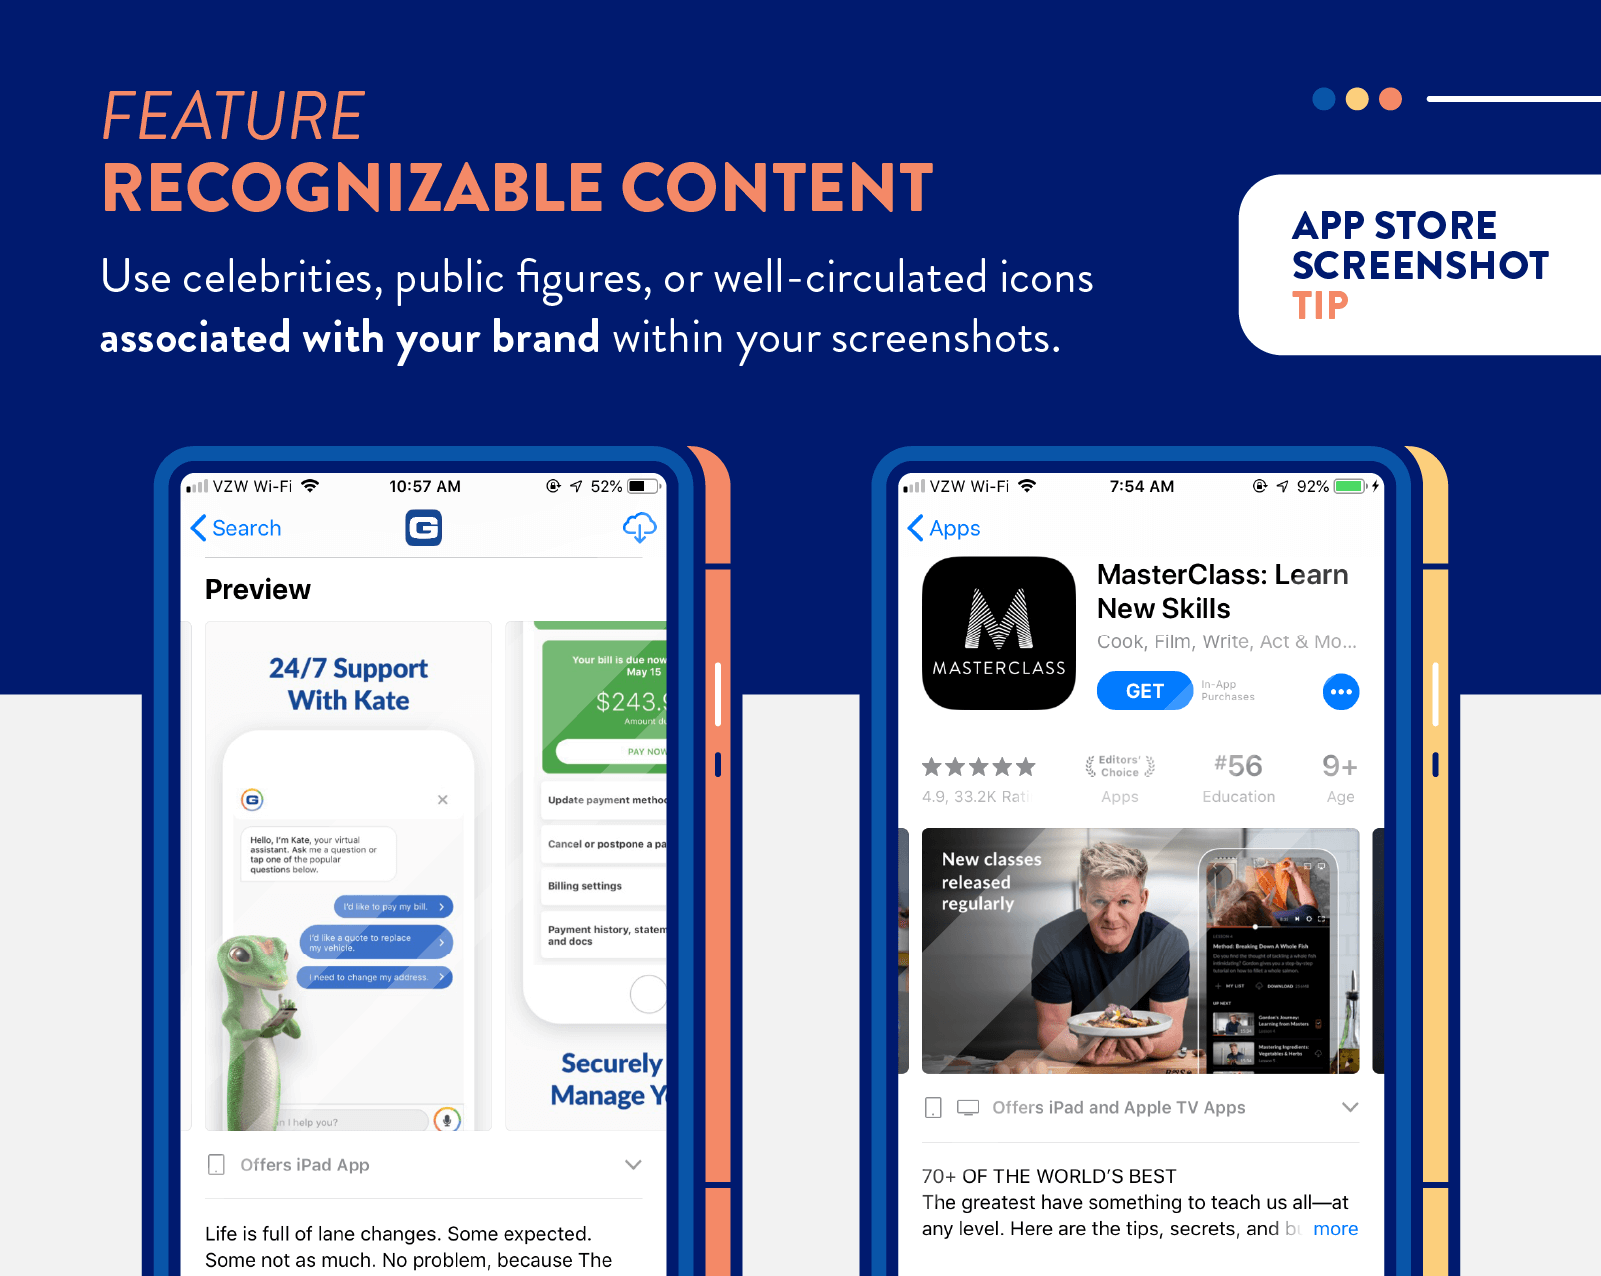 app store screenshots tip to feature recognizable content and celebrities